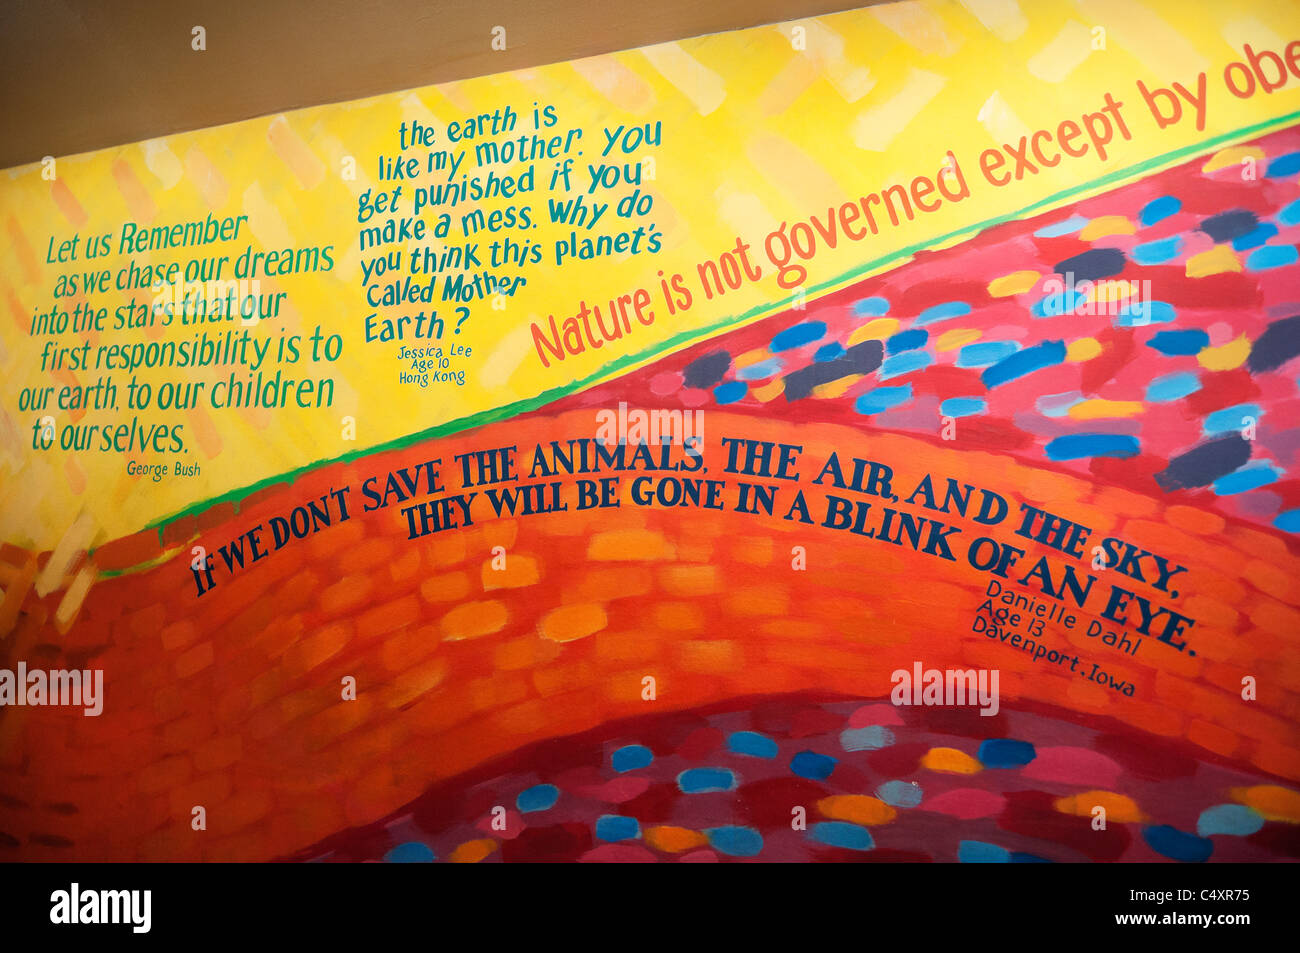 Epcot Theme Park and Center Orlando Florida The Land Pavilion interior mural celebrating the earth and our natural - Stock Image